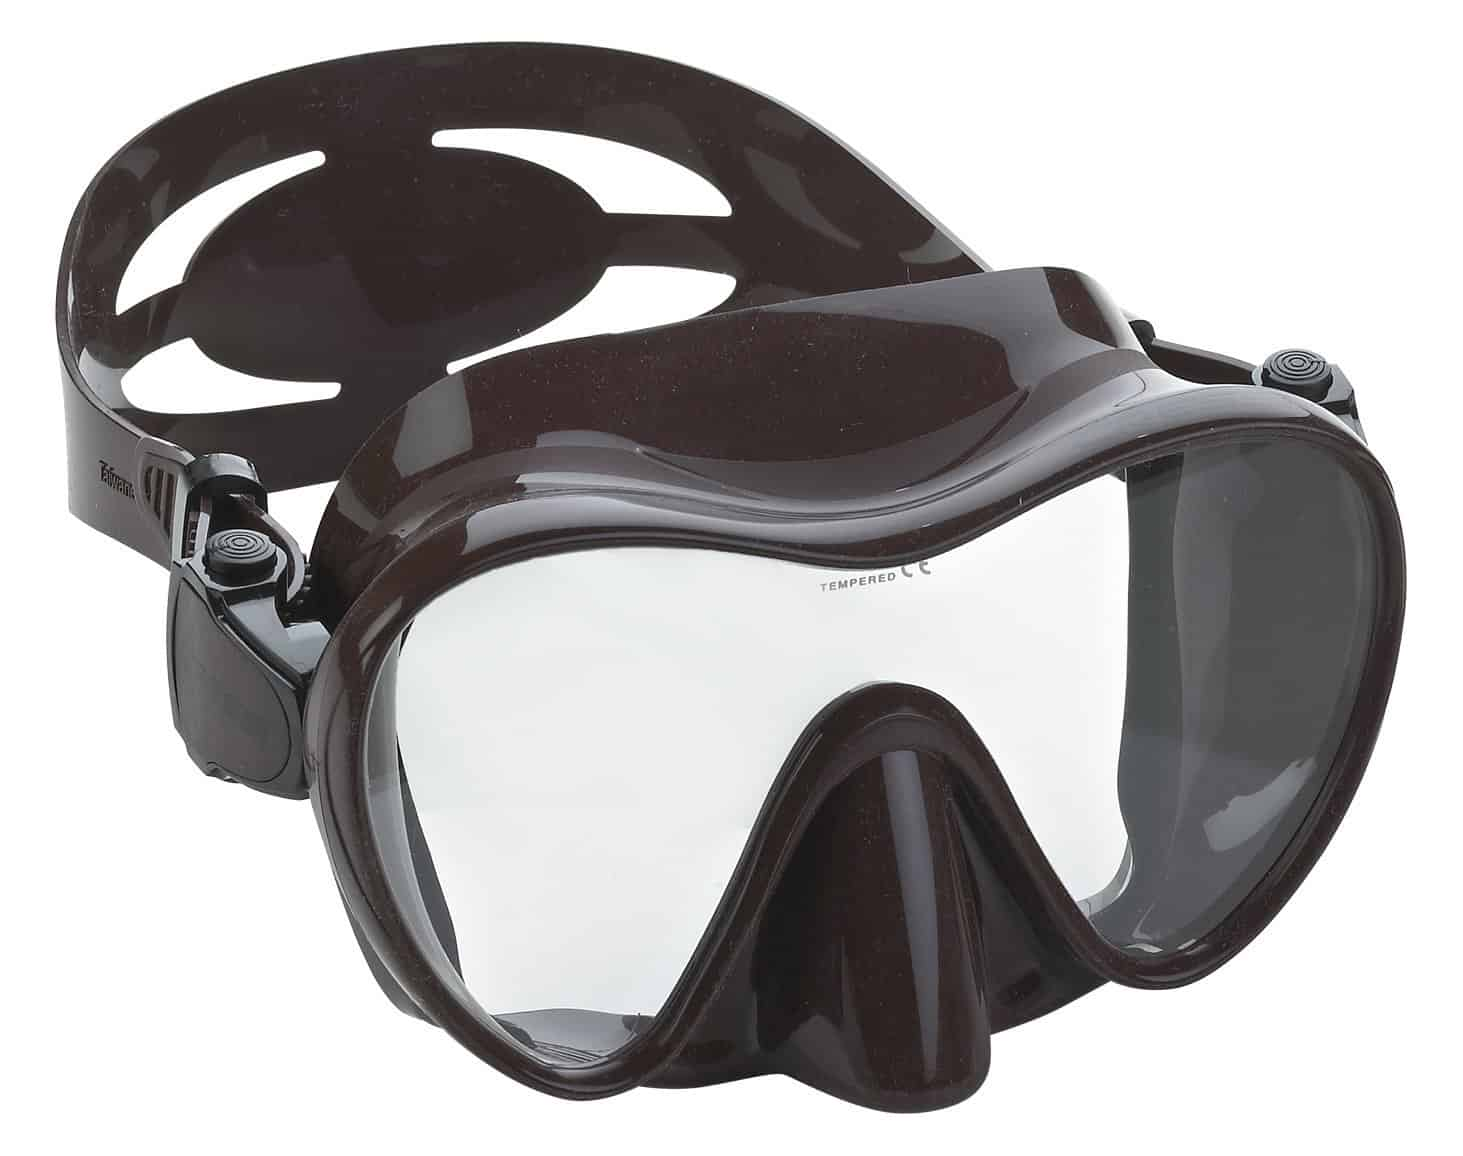 Cressi F1 - Scuba Diving Snorkeling Frameless Mask